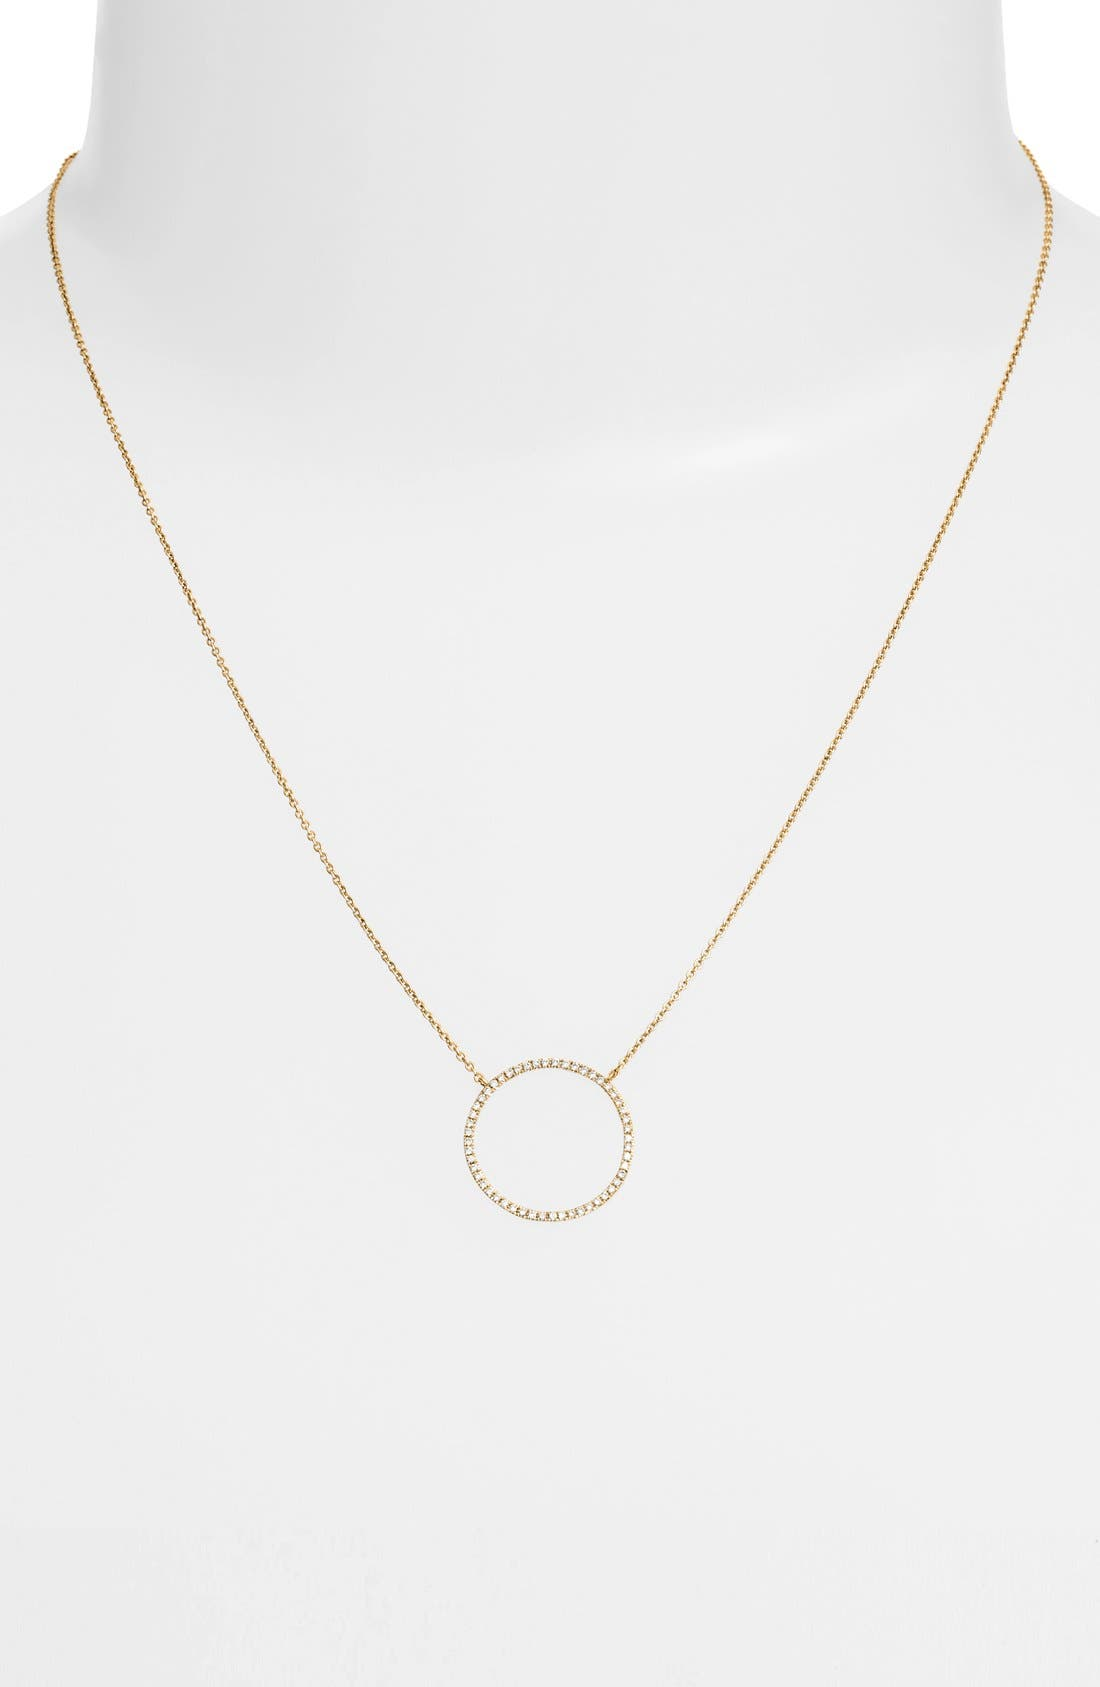 BONY LEVY, Simple Obsessions Circle Pendant Necklace, Alternate thumbnail 2, color, YELLOW GOLD